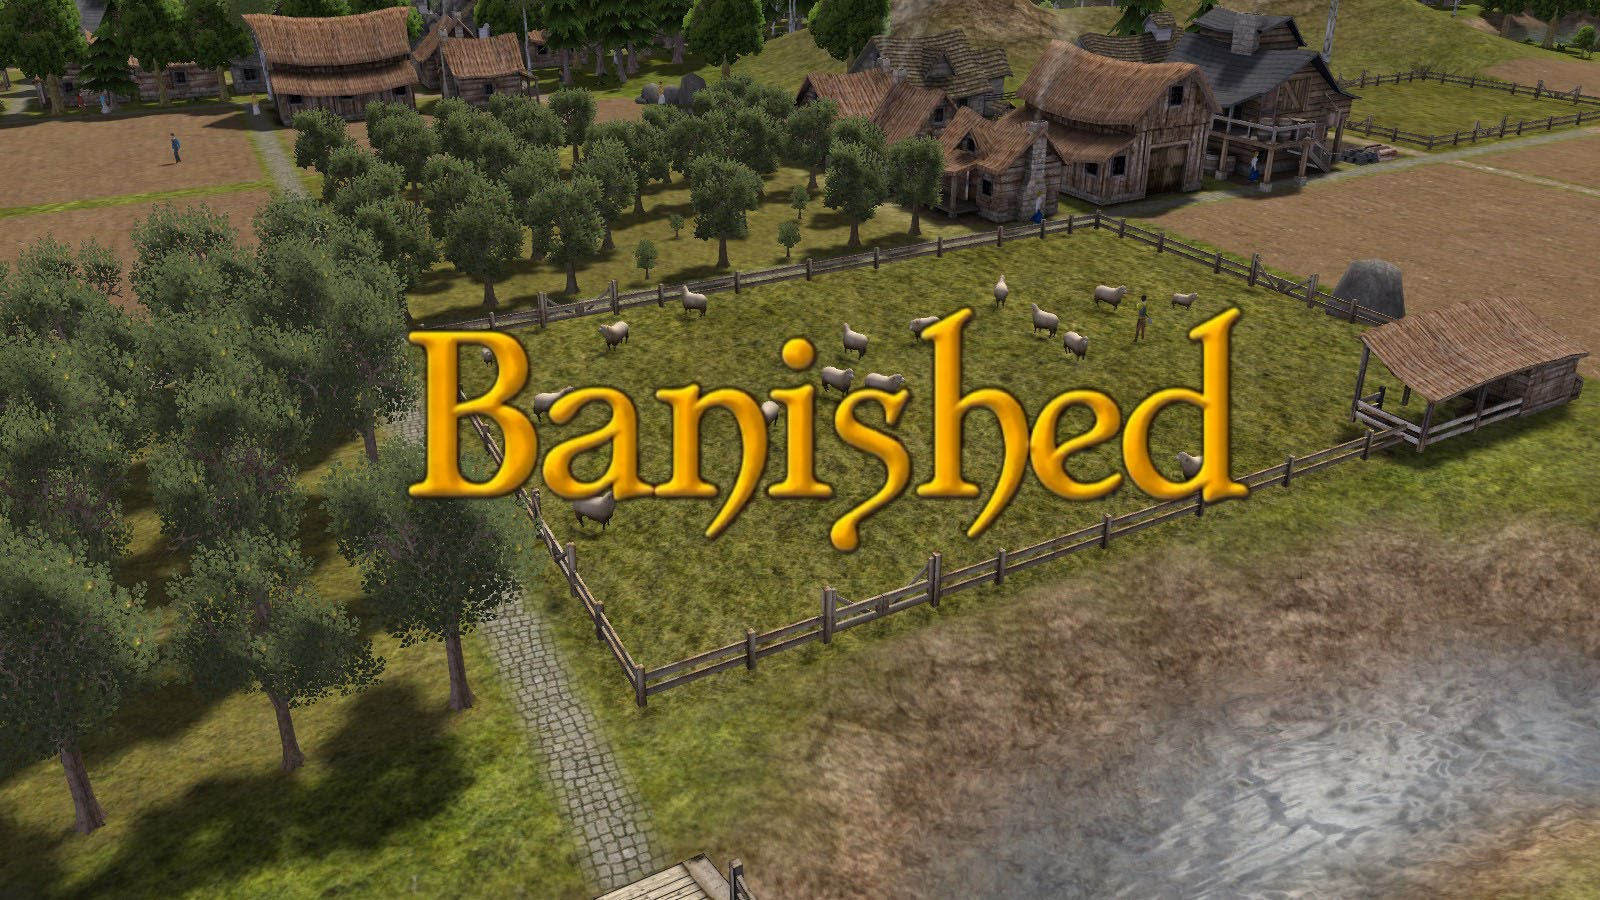 O tech aconselha: Banished